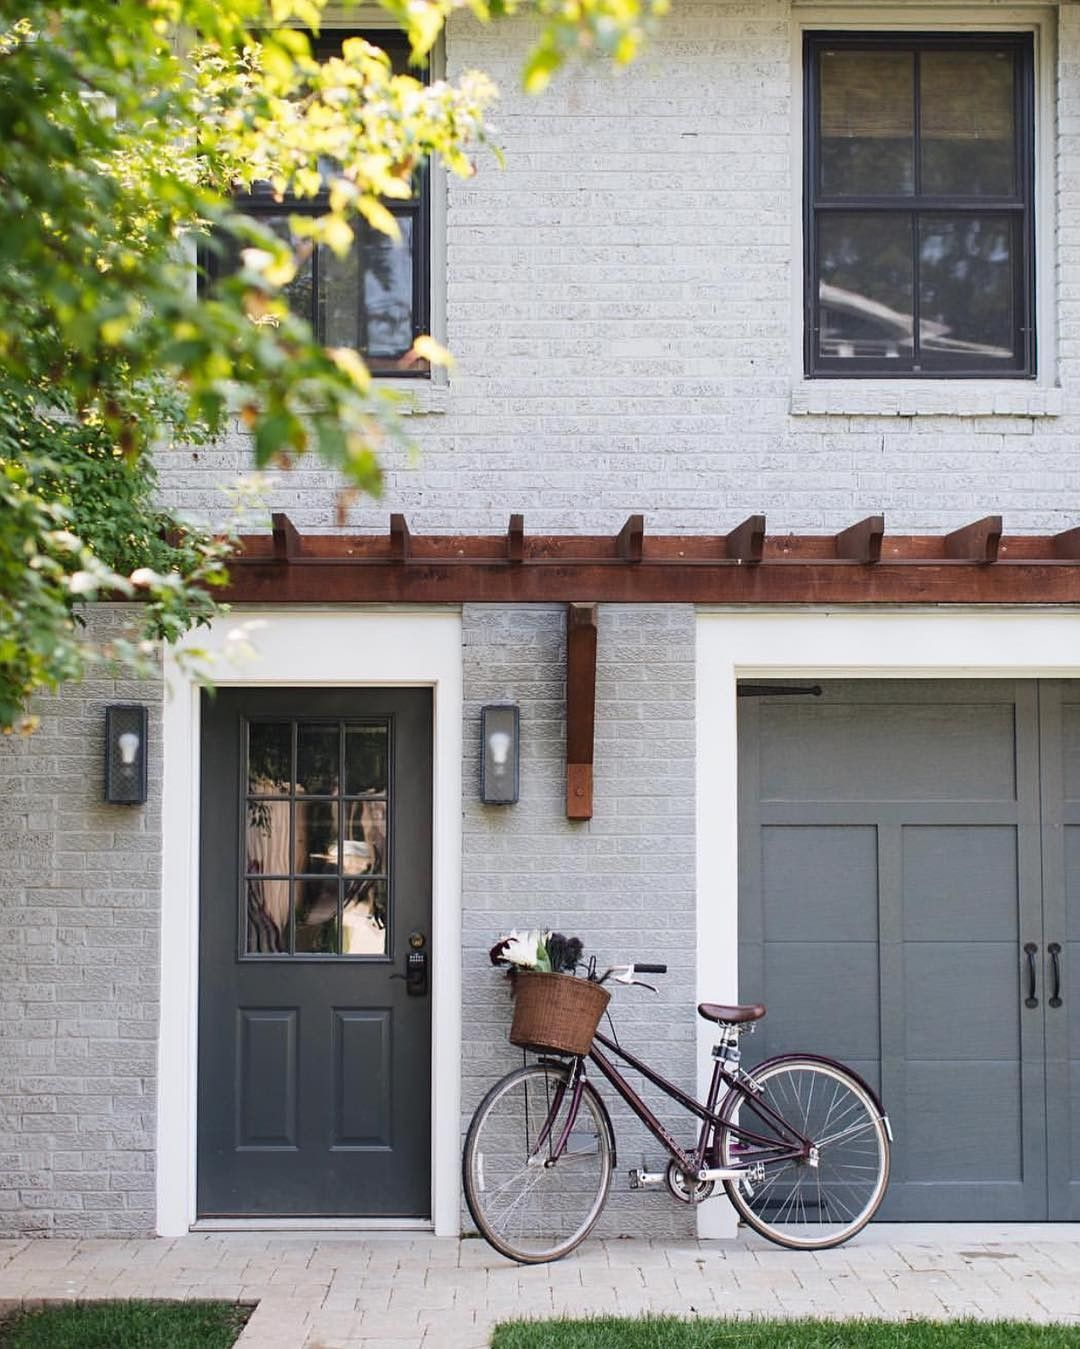 @sketchpadhouseplans posted to Instagram: #blackwindows, #paintedbrick, and a #grey #exterior make this home trendy and cool. Design: @hogankellydesign